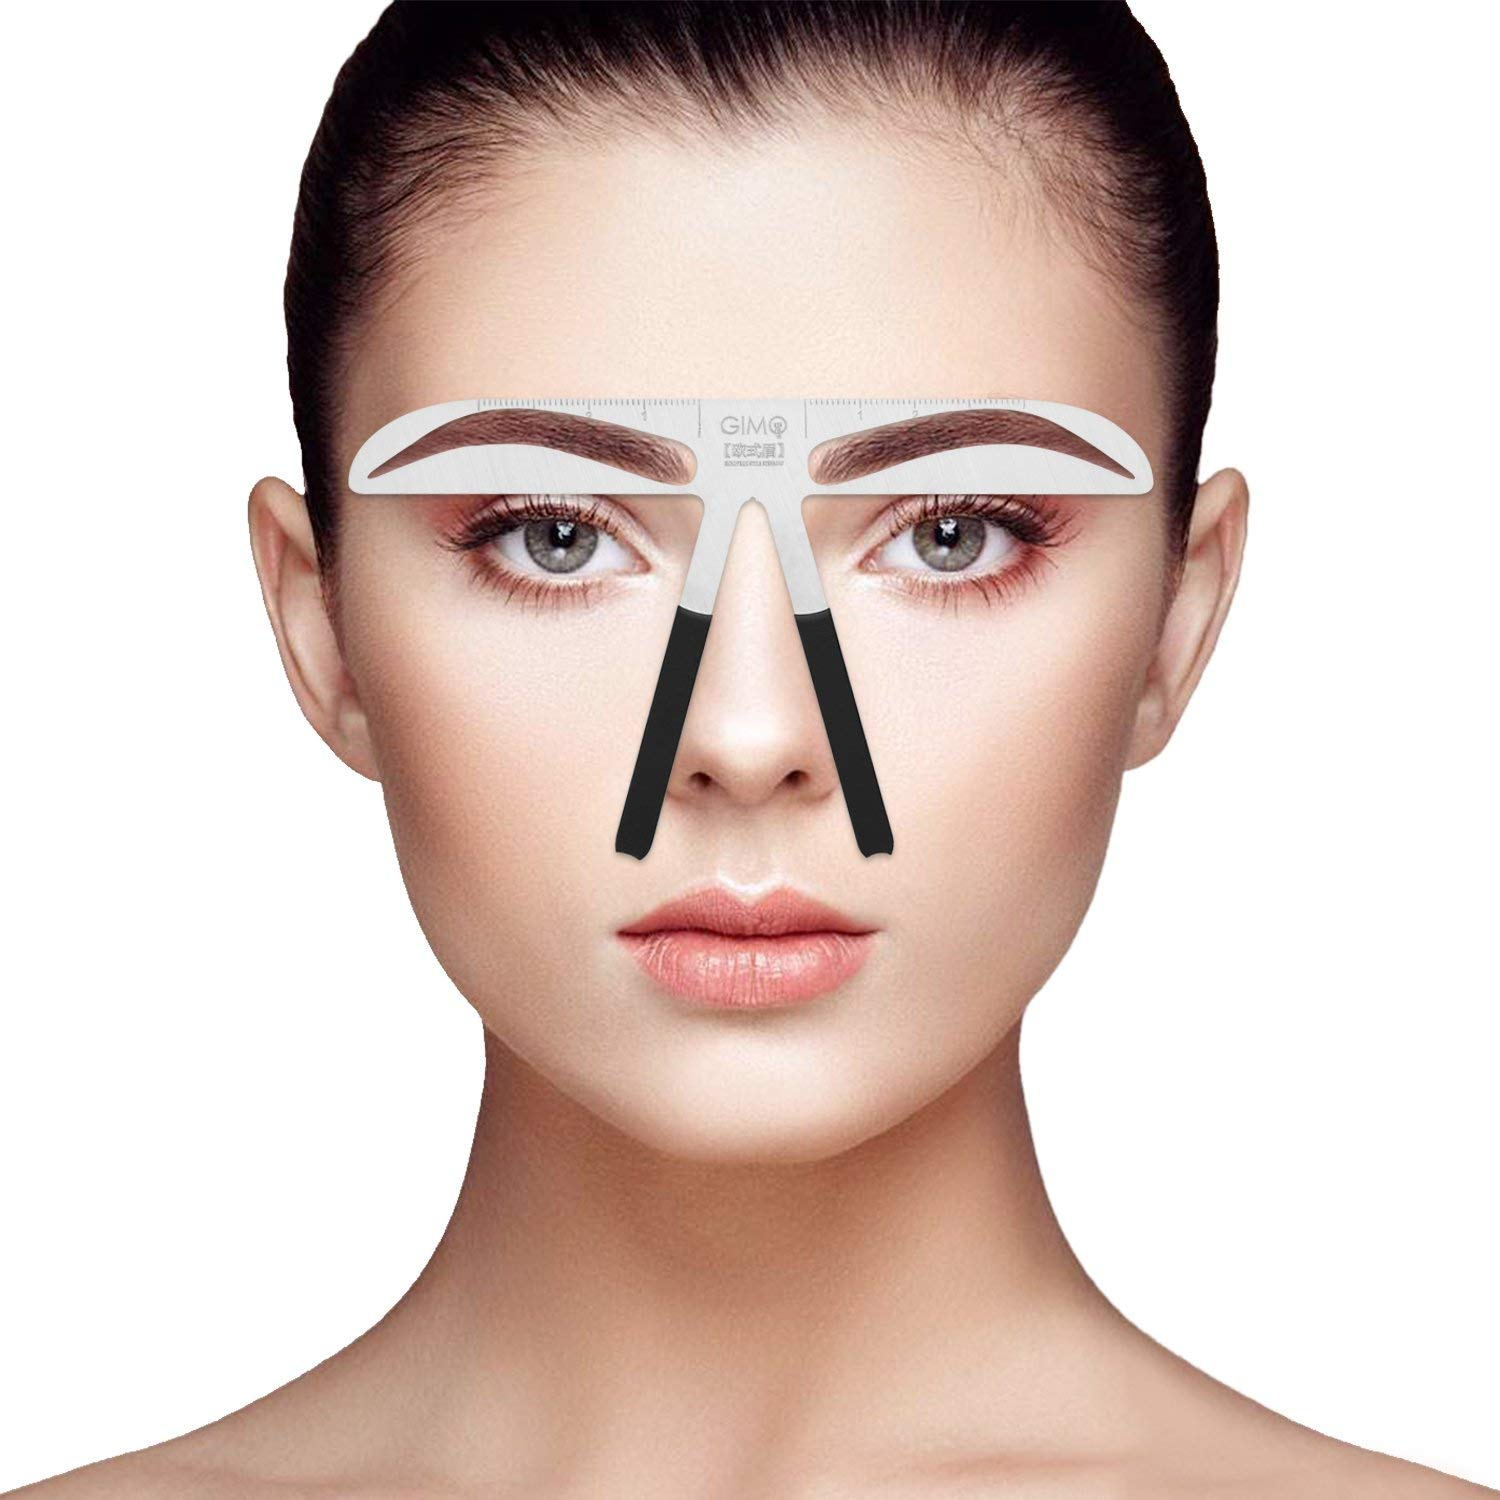 Professional Eyebrow Stencil Ruler For Eyebrows Measuring Permanent Makeup Tools(5)